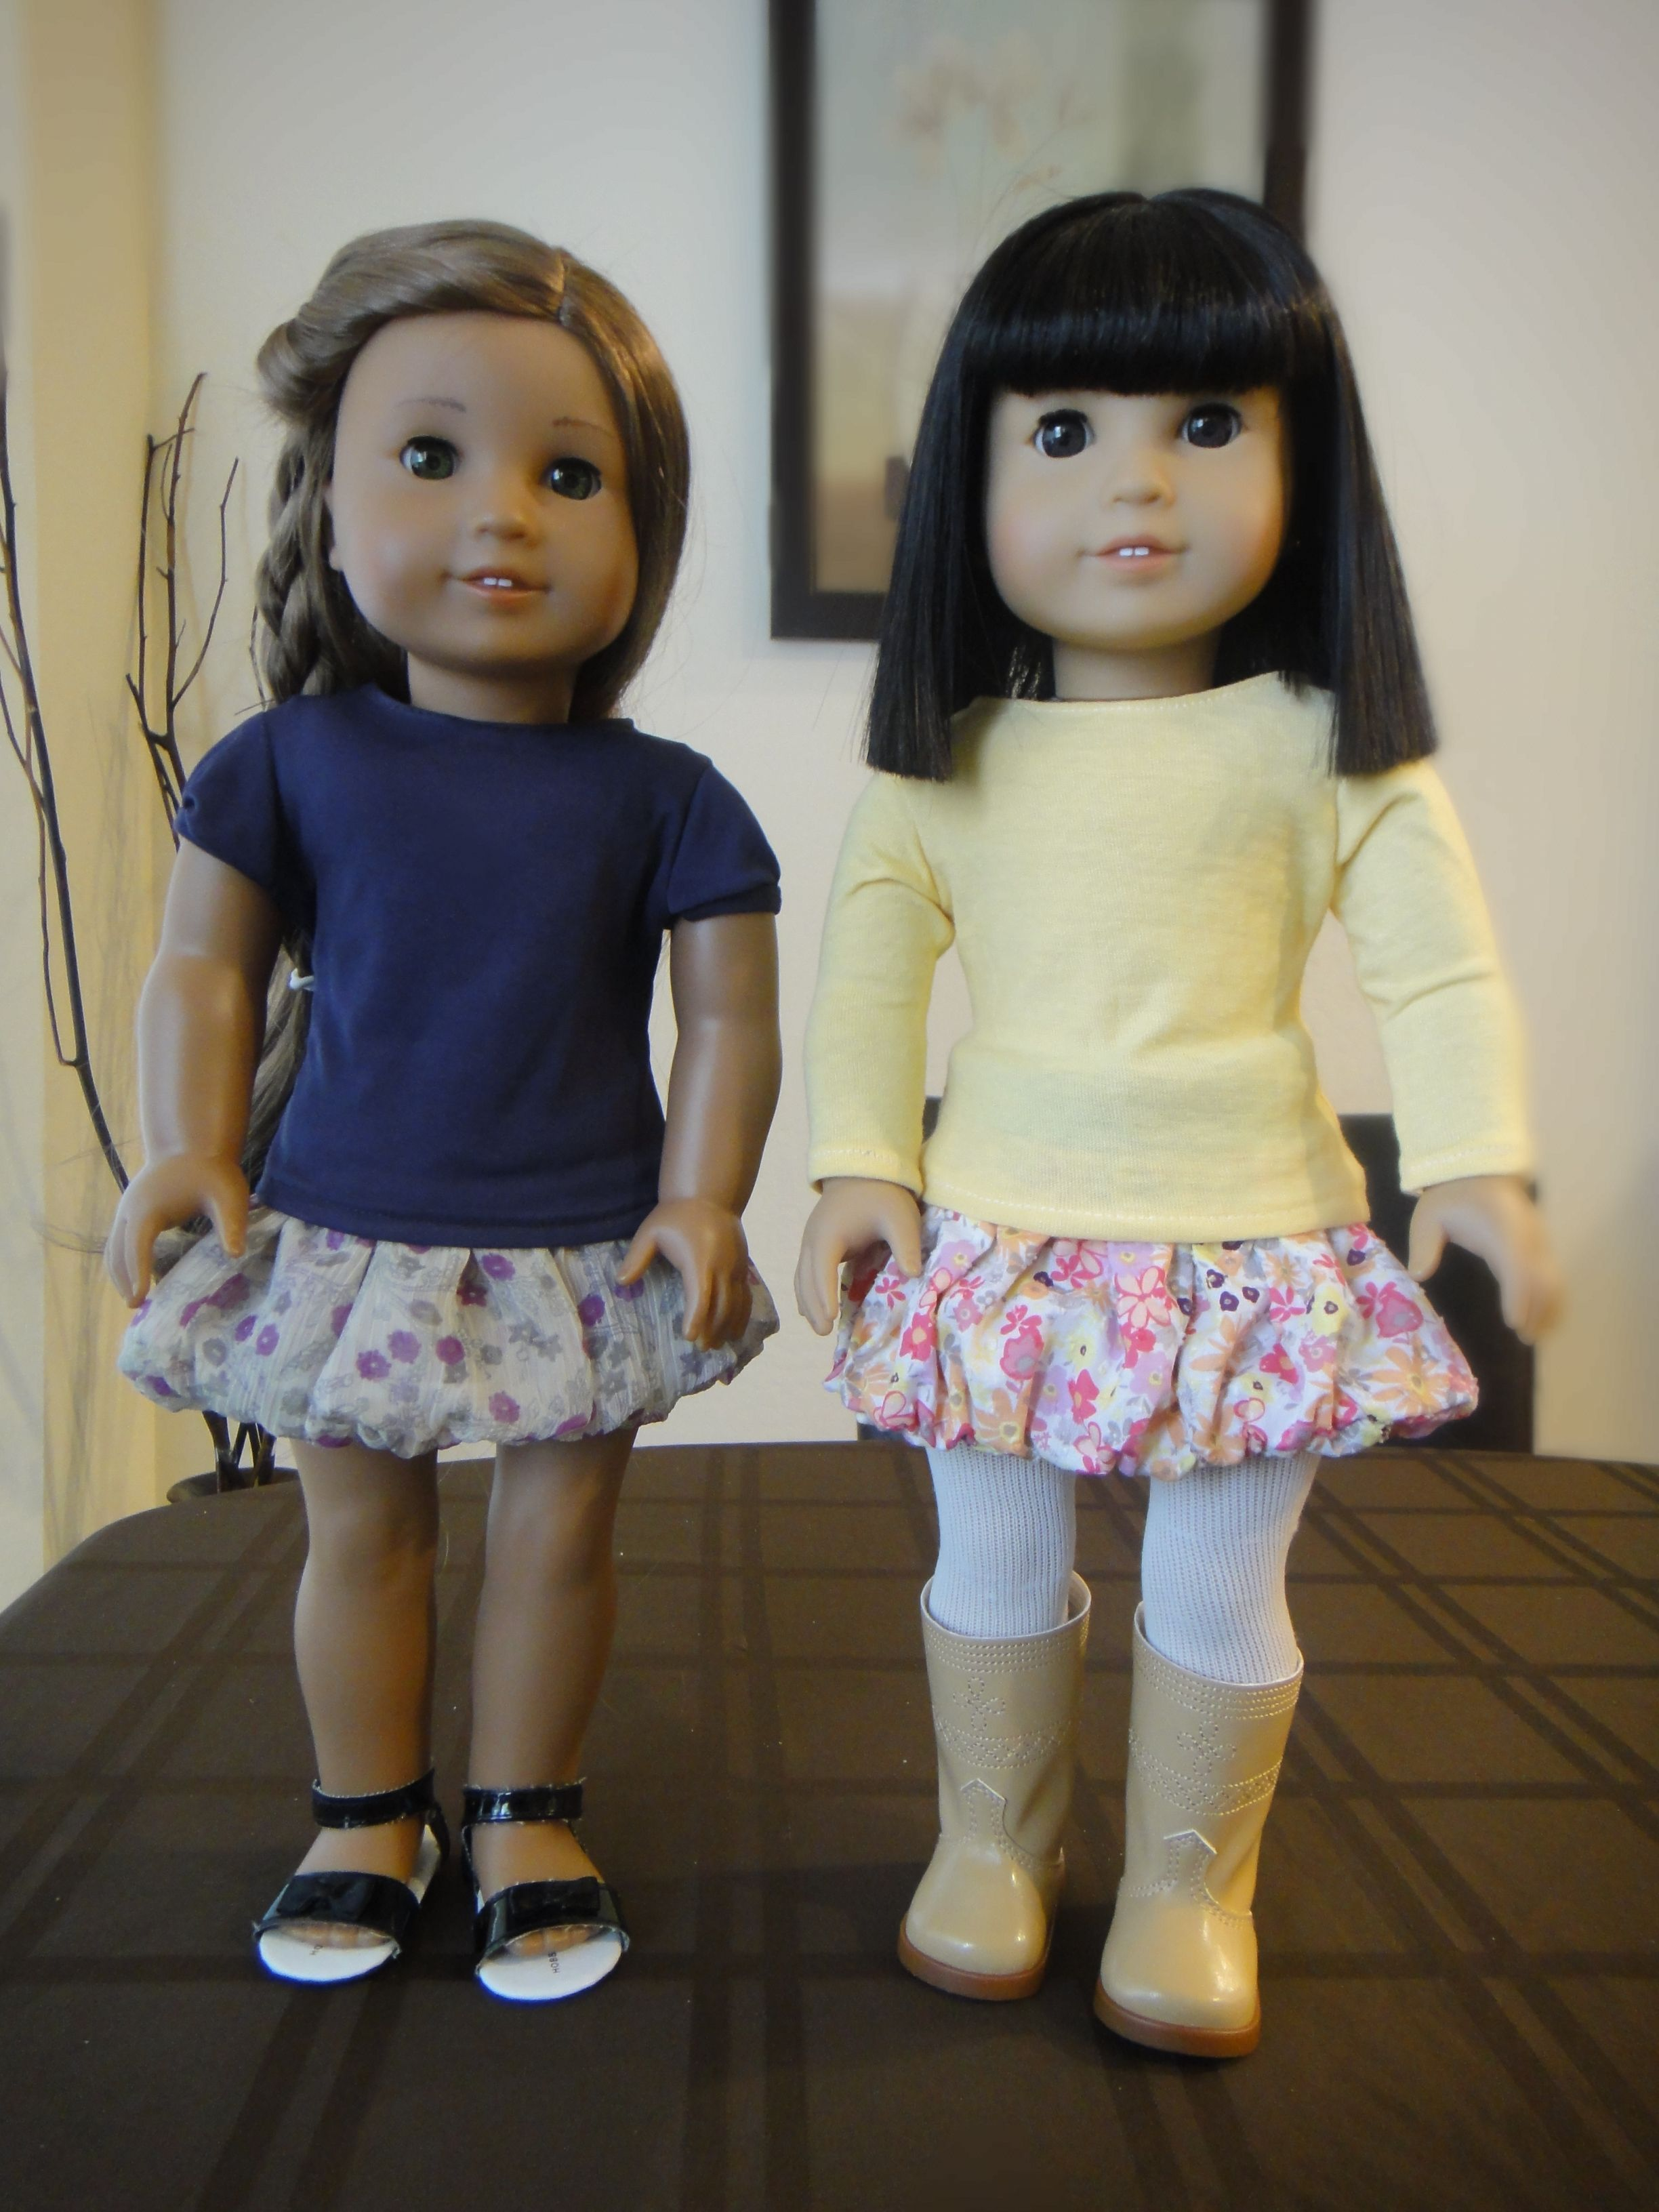 I'd love to get Reese an American Girl doll some day and how cute would one of those skirts be? How to Sew a No Pattern Bubble Skirt for American Girl Dolls #bedfalls62 I'd love to get Reese an American Girl doll some day and how cute would one of those skirts be? How to Sew a No Pattern Bubble Skirt for American Girl Dolls #bedfalls62 I'd love to get Reese an American Girl doll some day and how cute would one of those skirts be? How to Sew a No Pattern Bubble Skirt for American Girl Dolls #bedf #bedfalls62